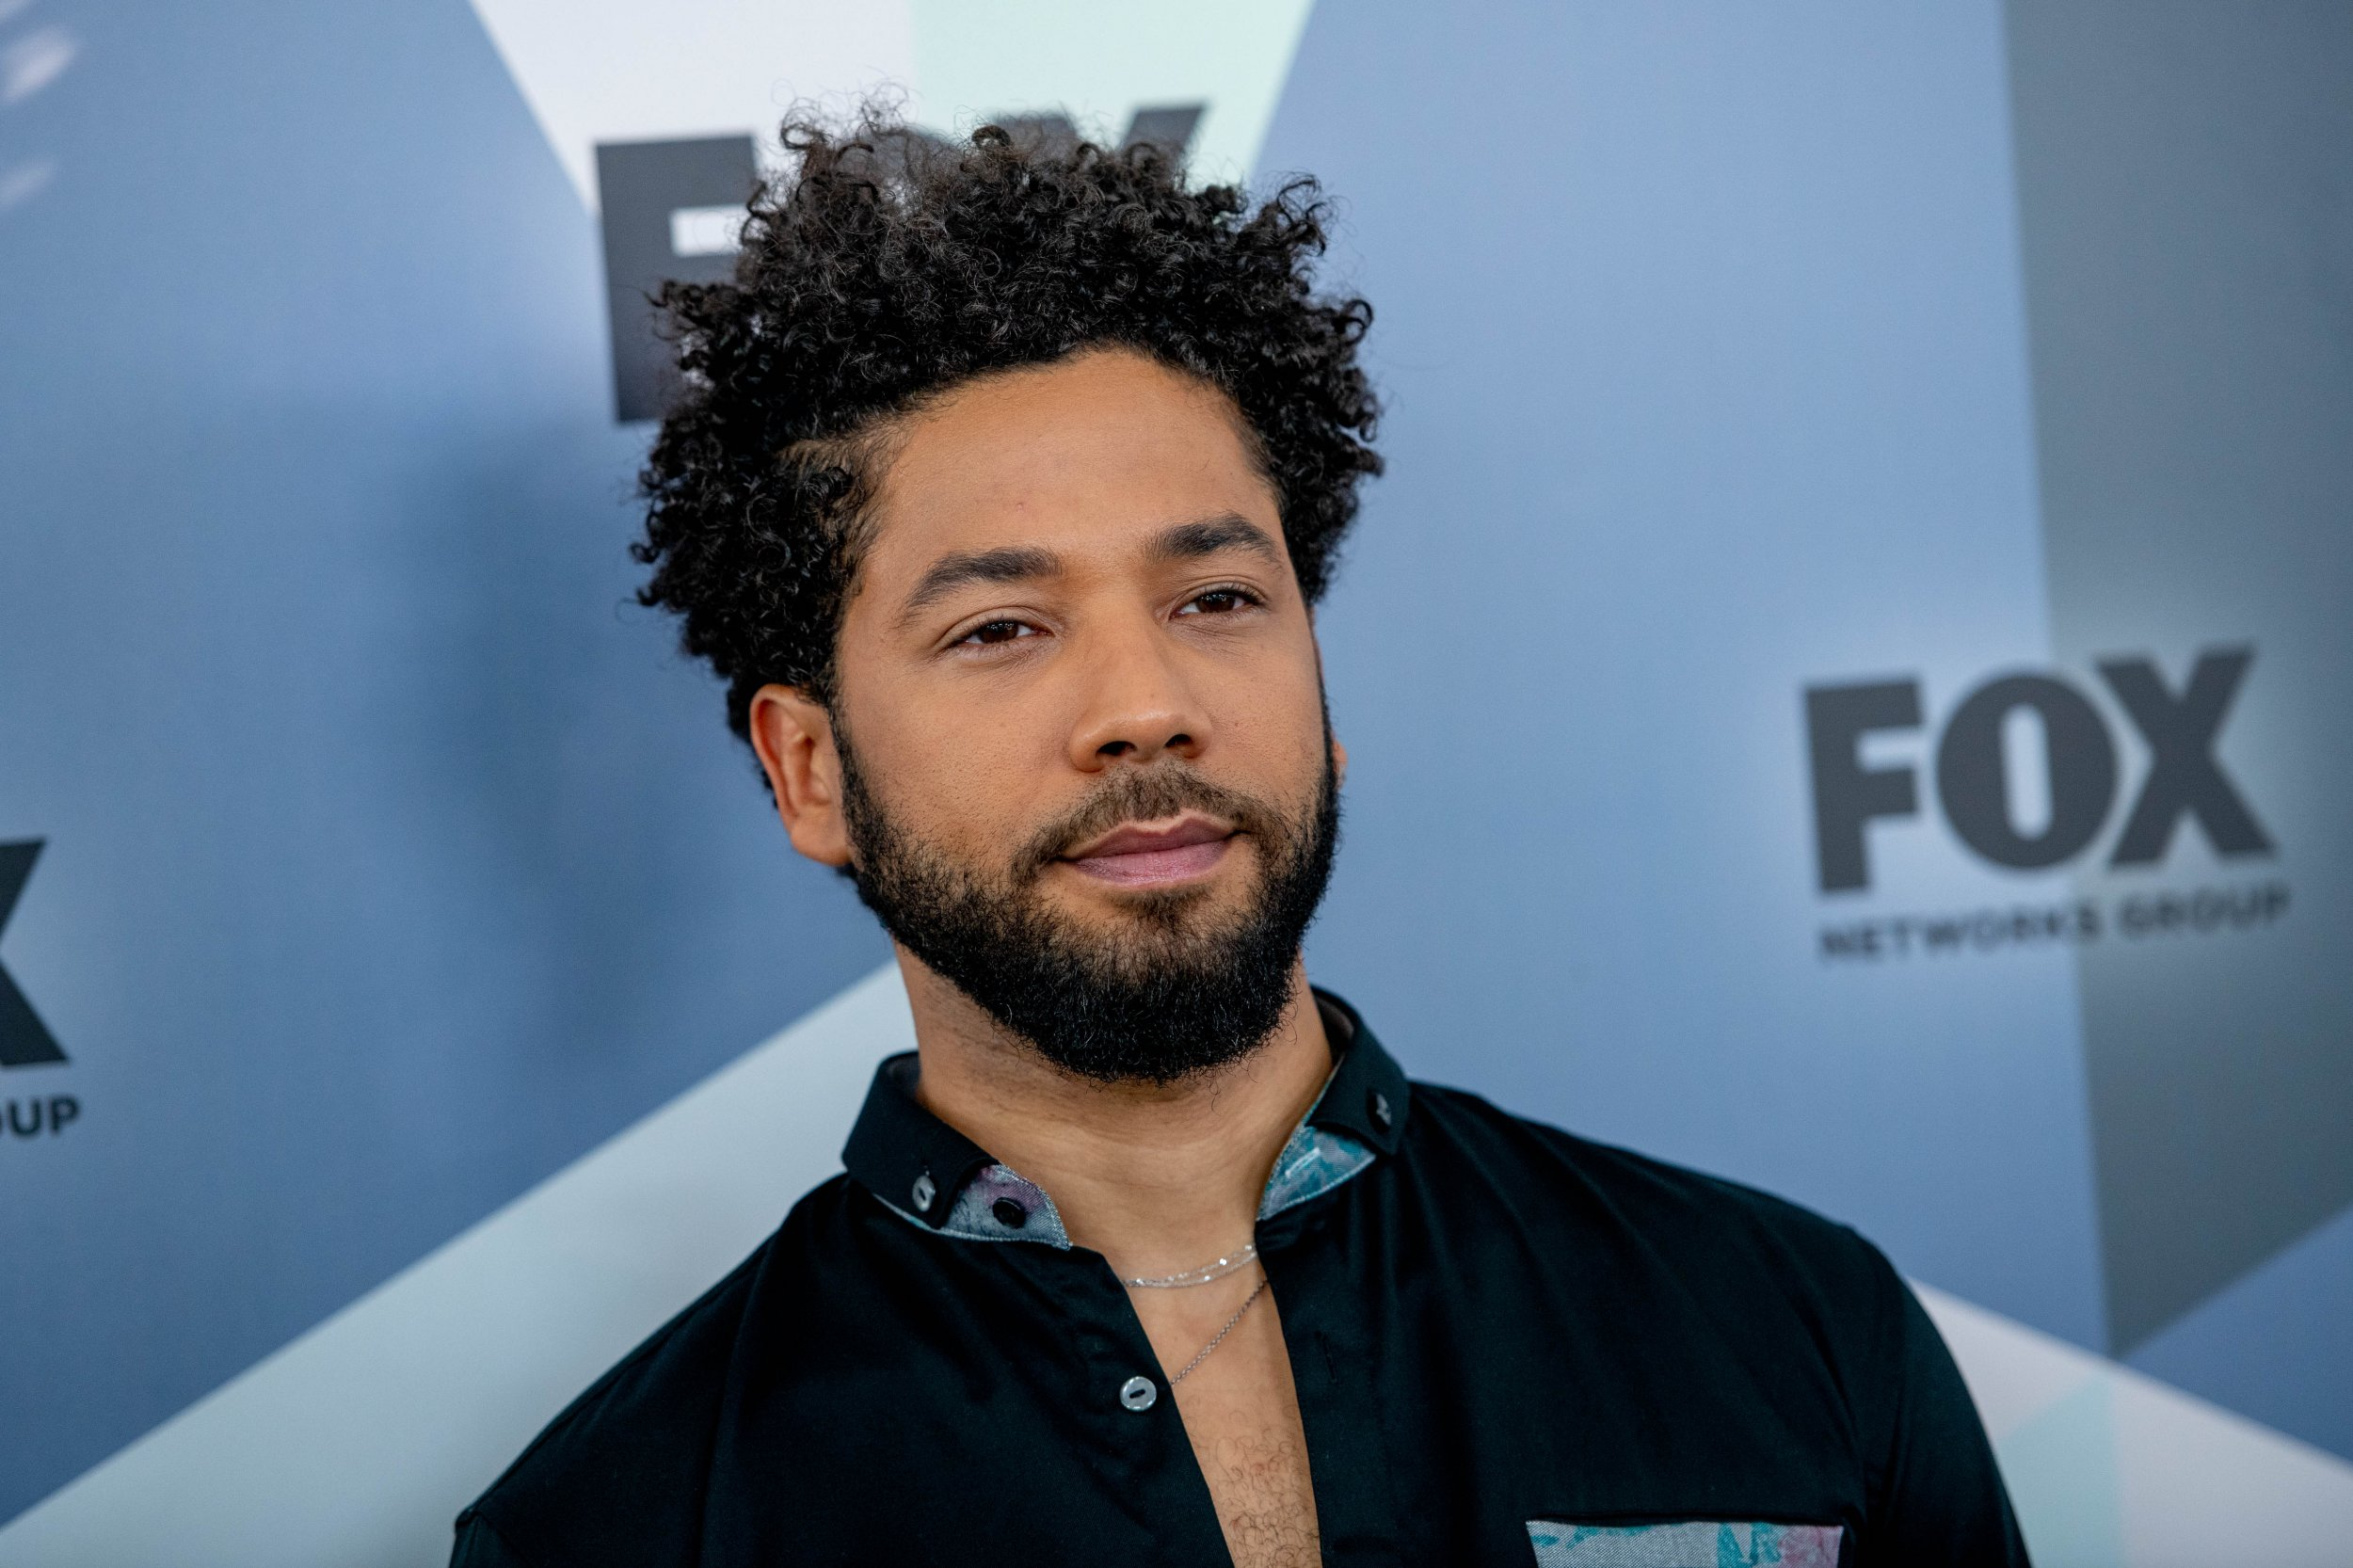 Jussie Smollett Speaks Out on Attack